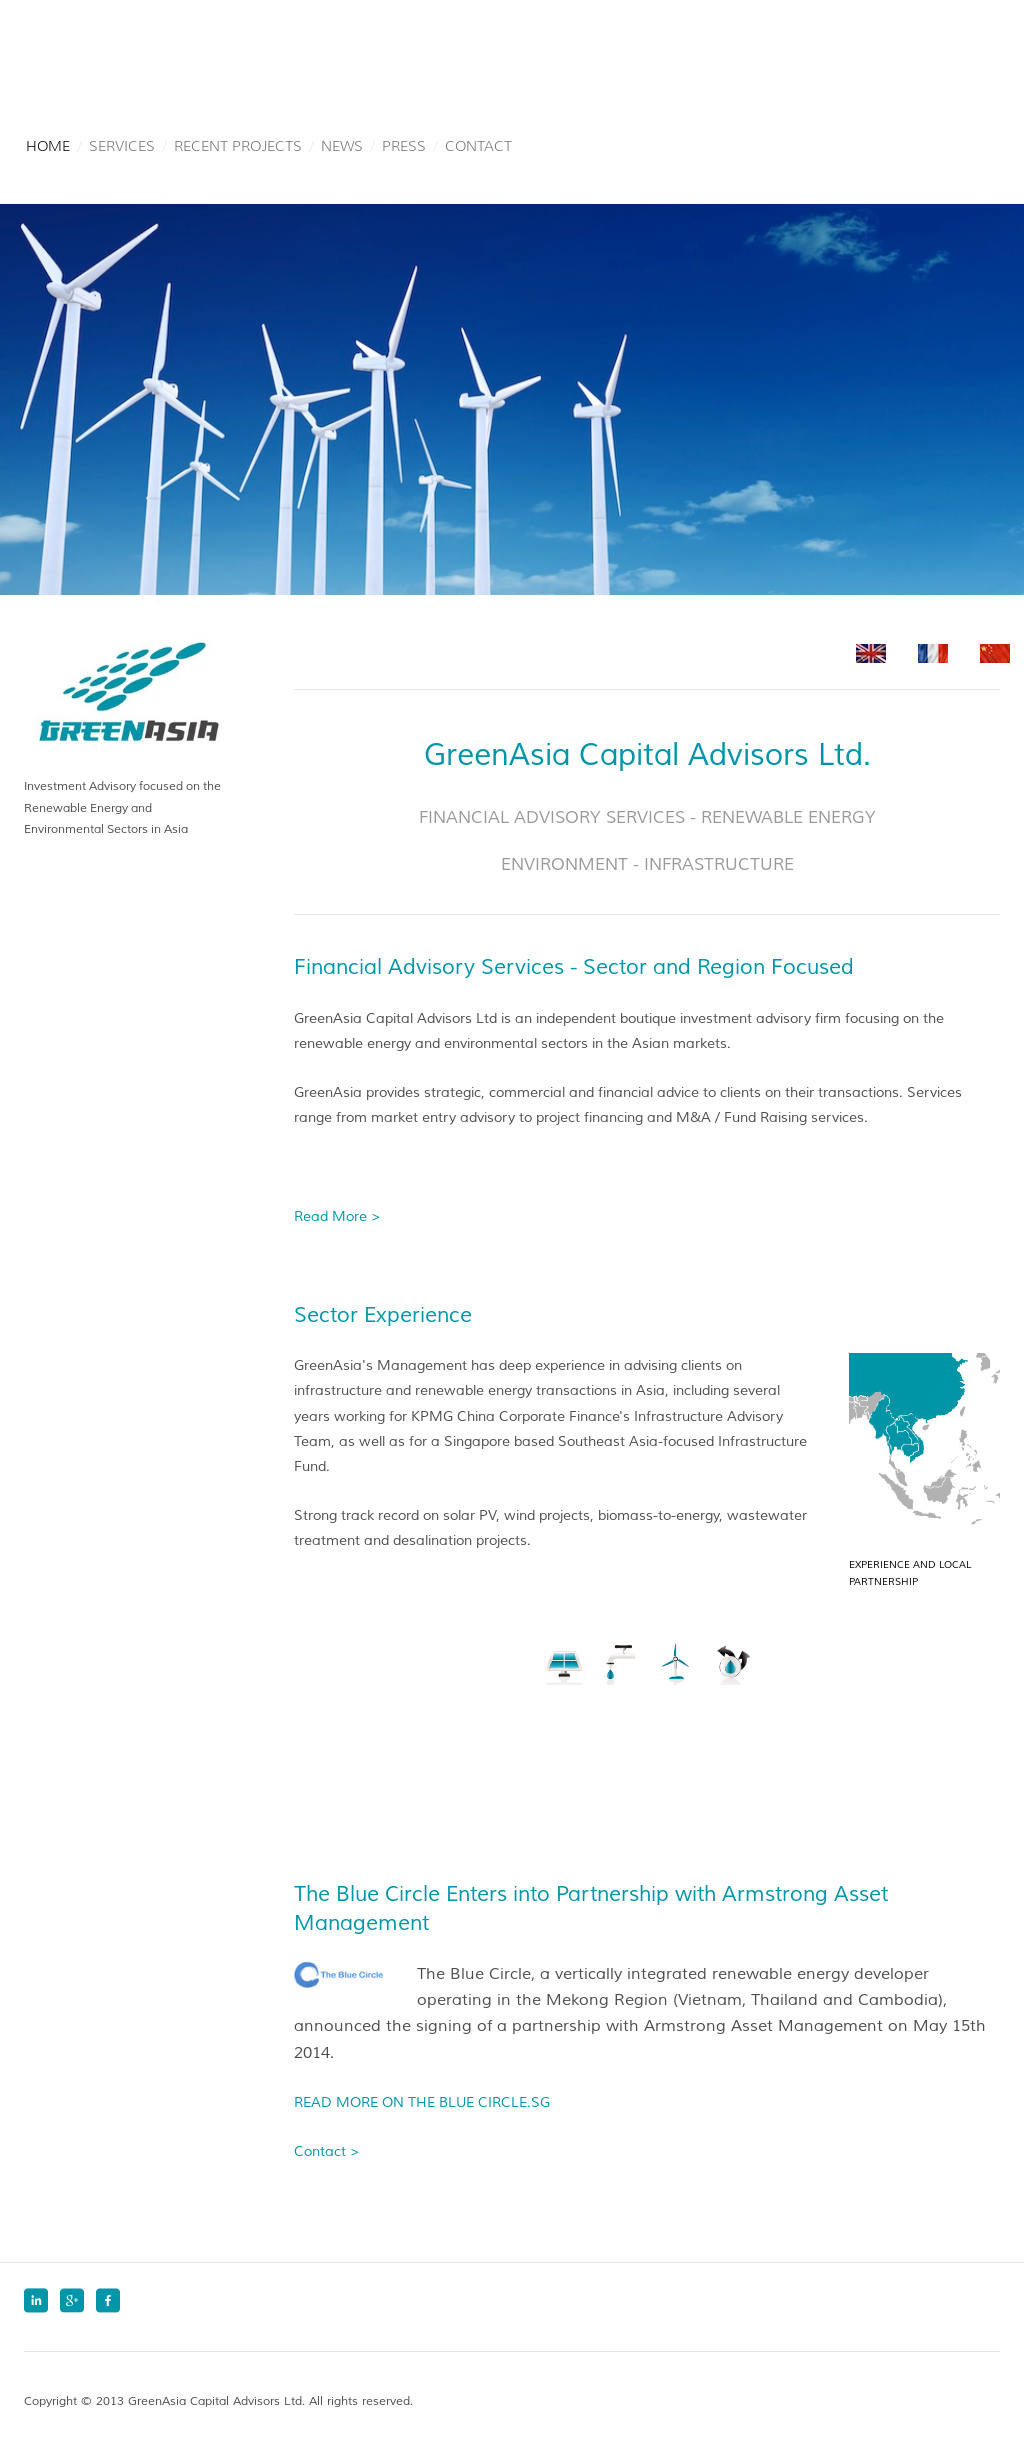 Greenasia Capital Advisors Competitors, Revenue and Employees